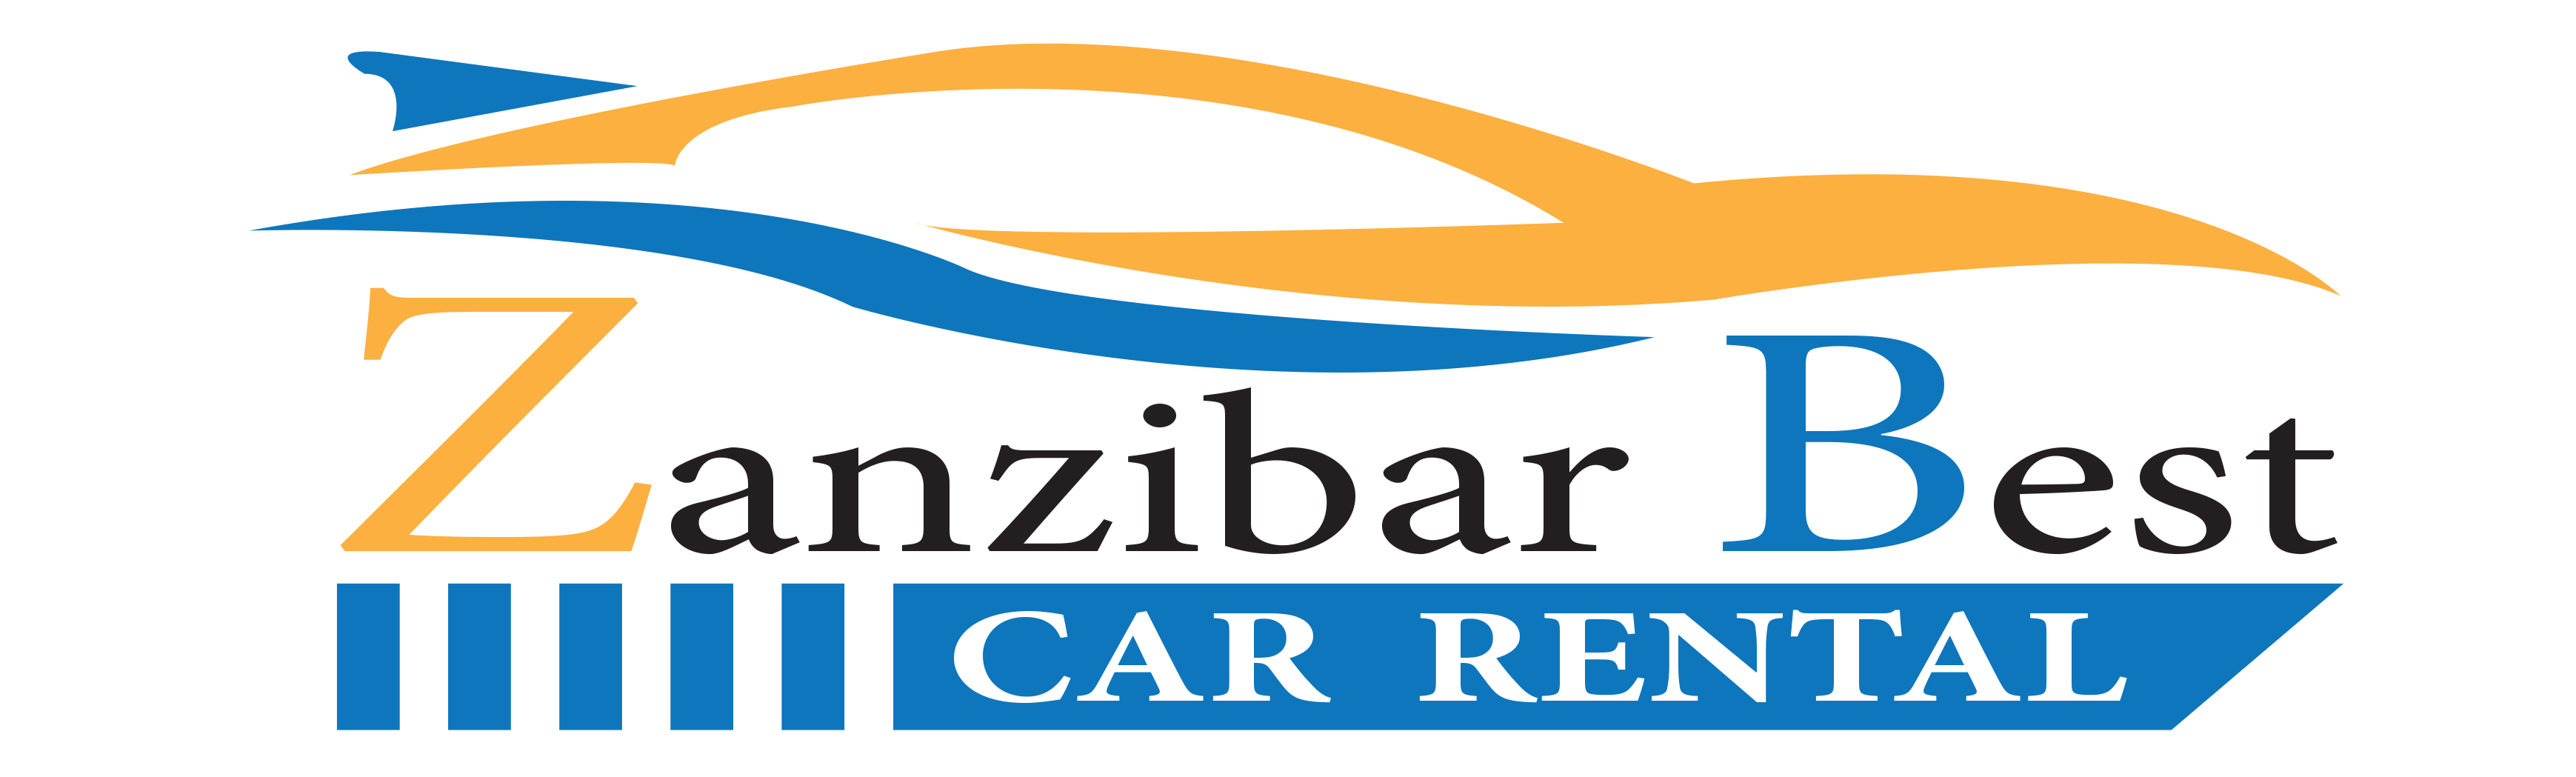 Zanzibar Best Car Rental